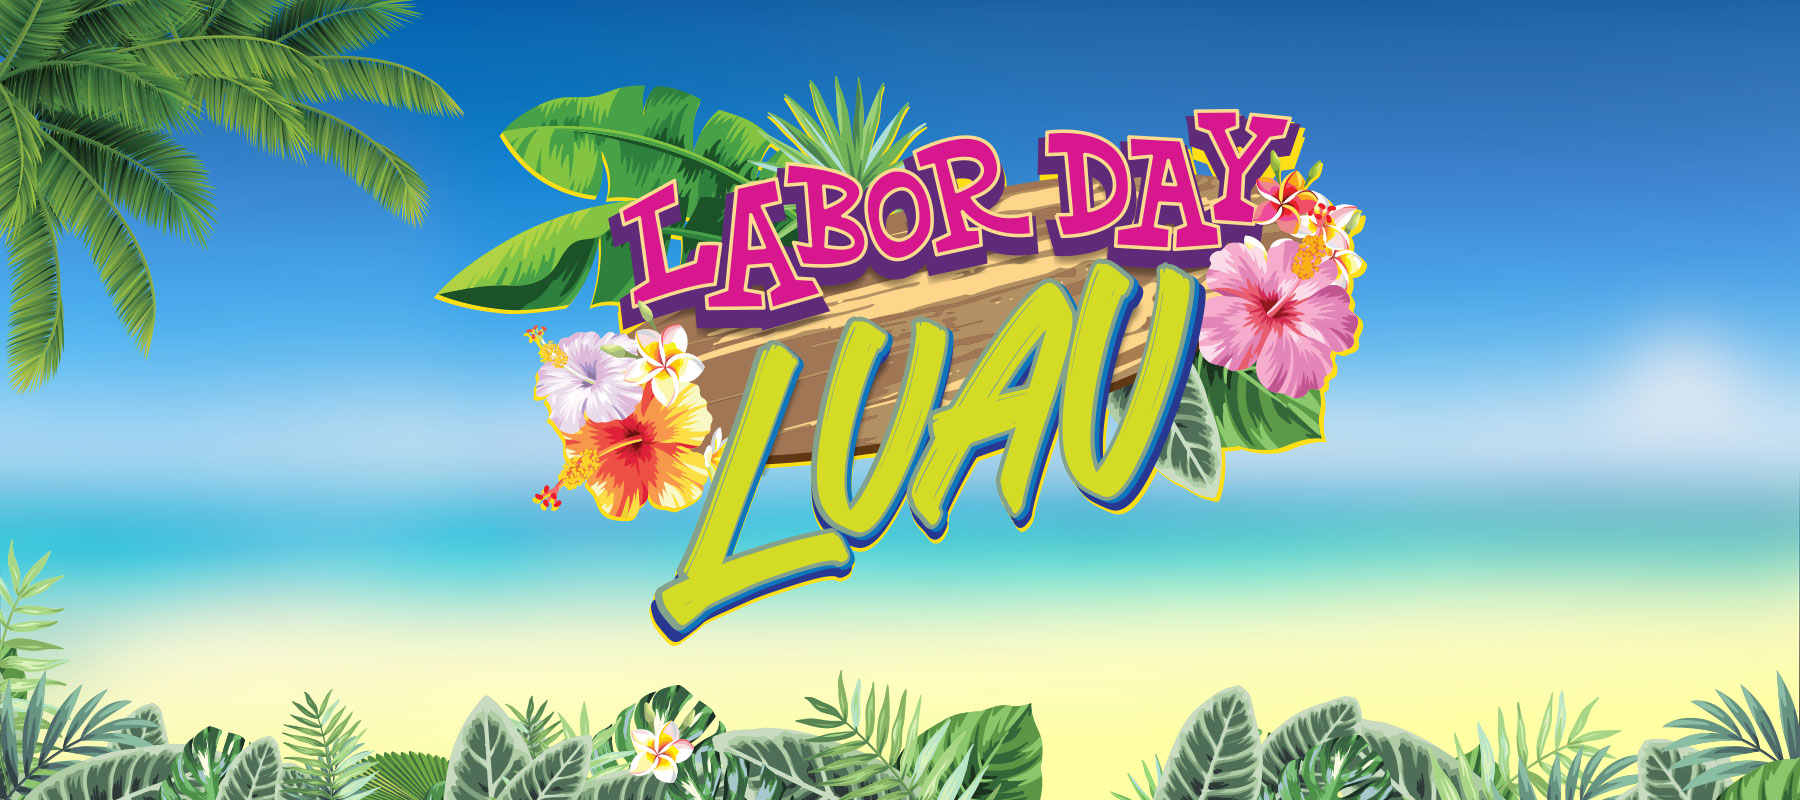 Labor Day Luau